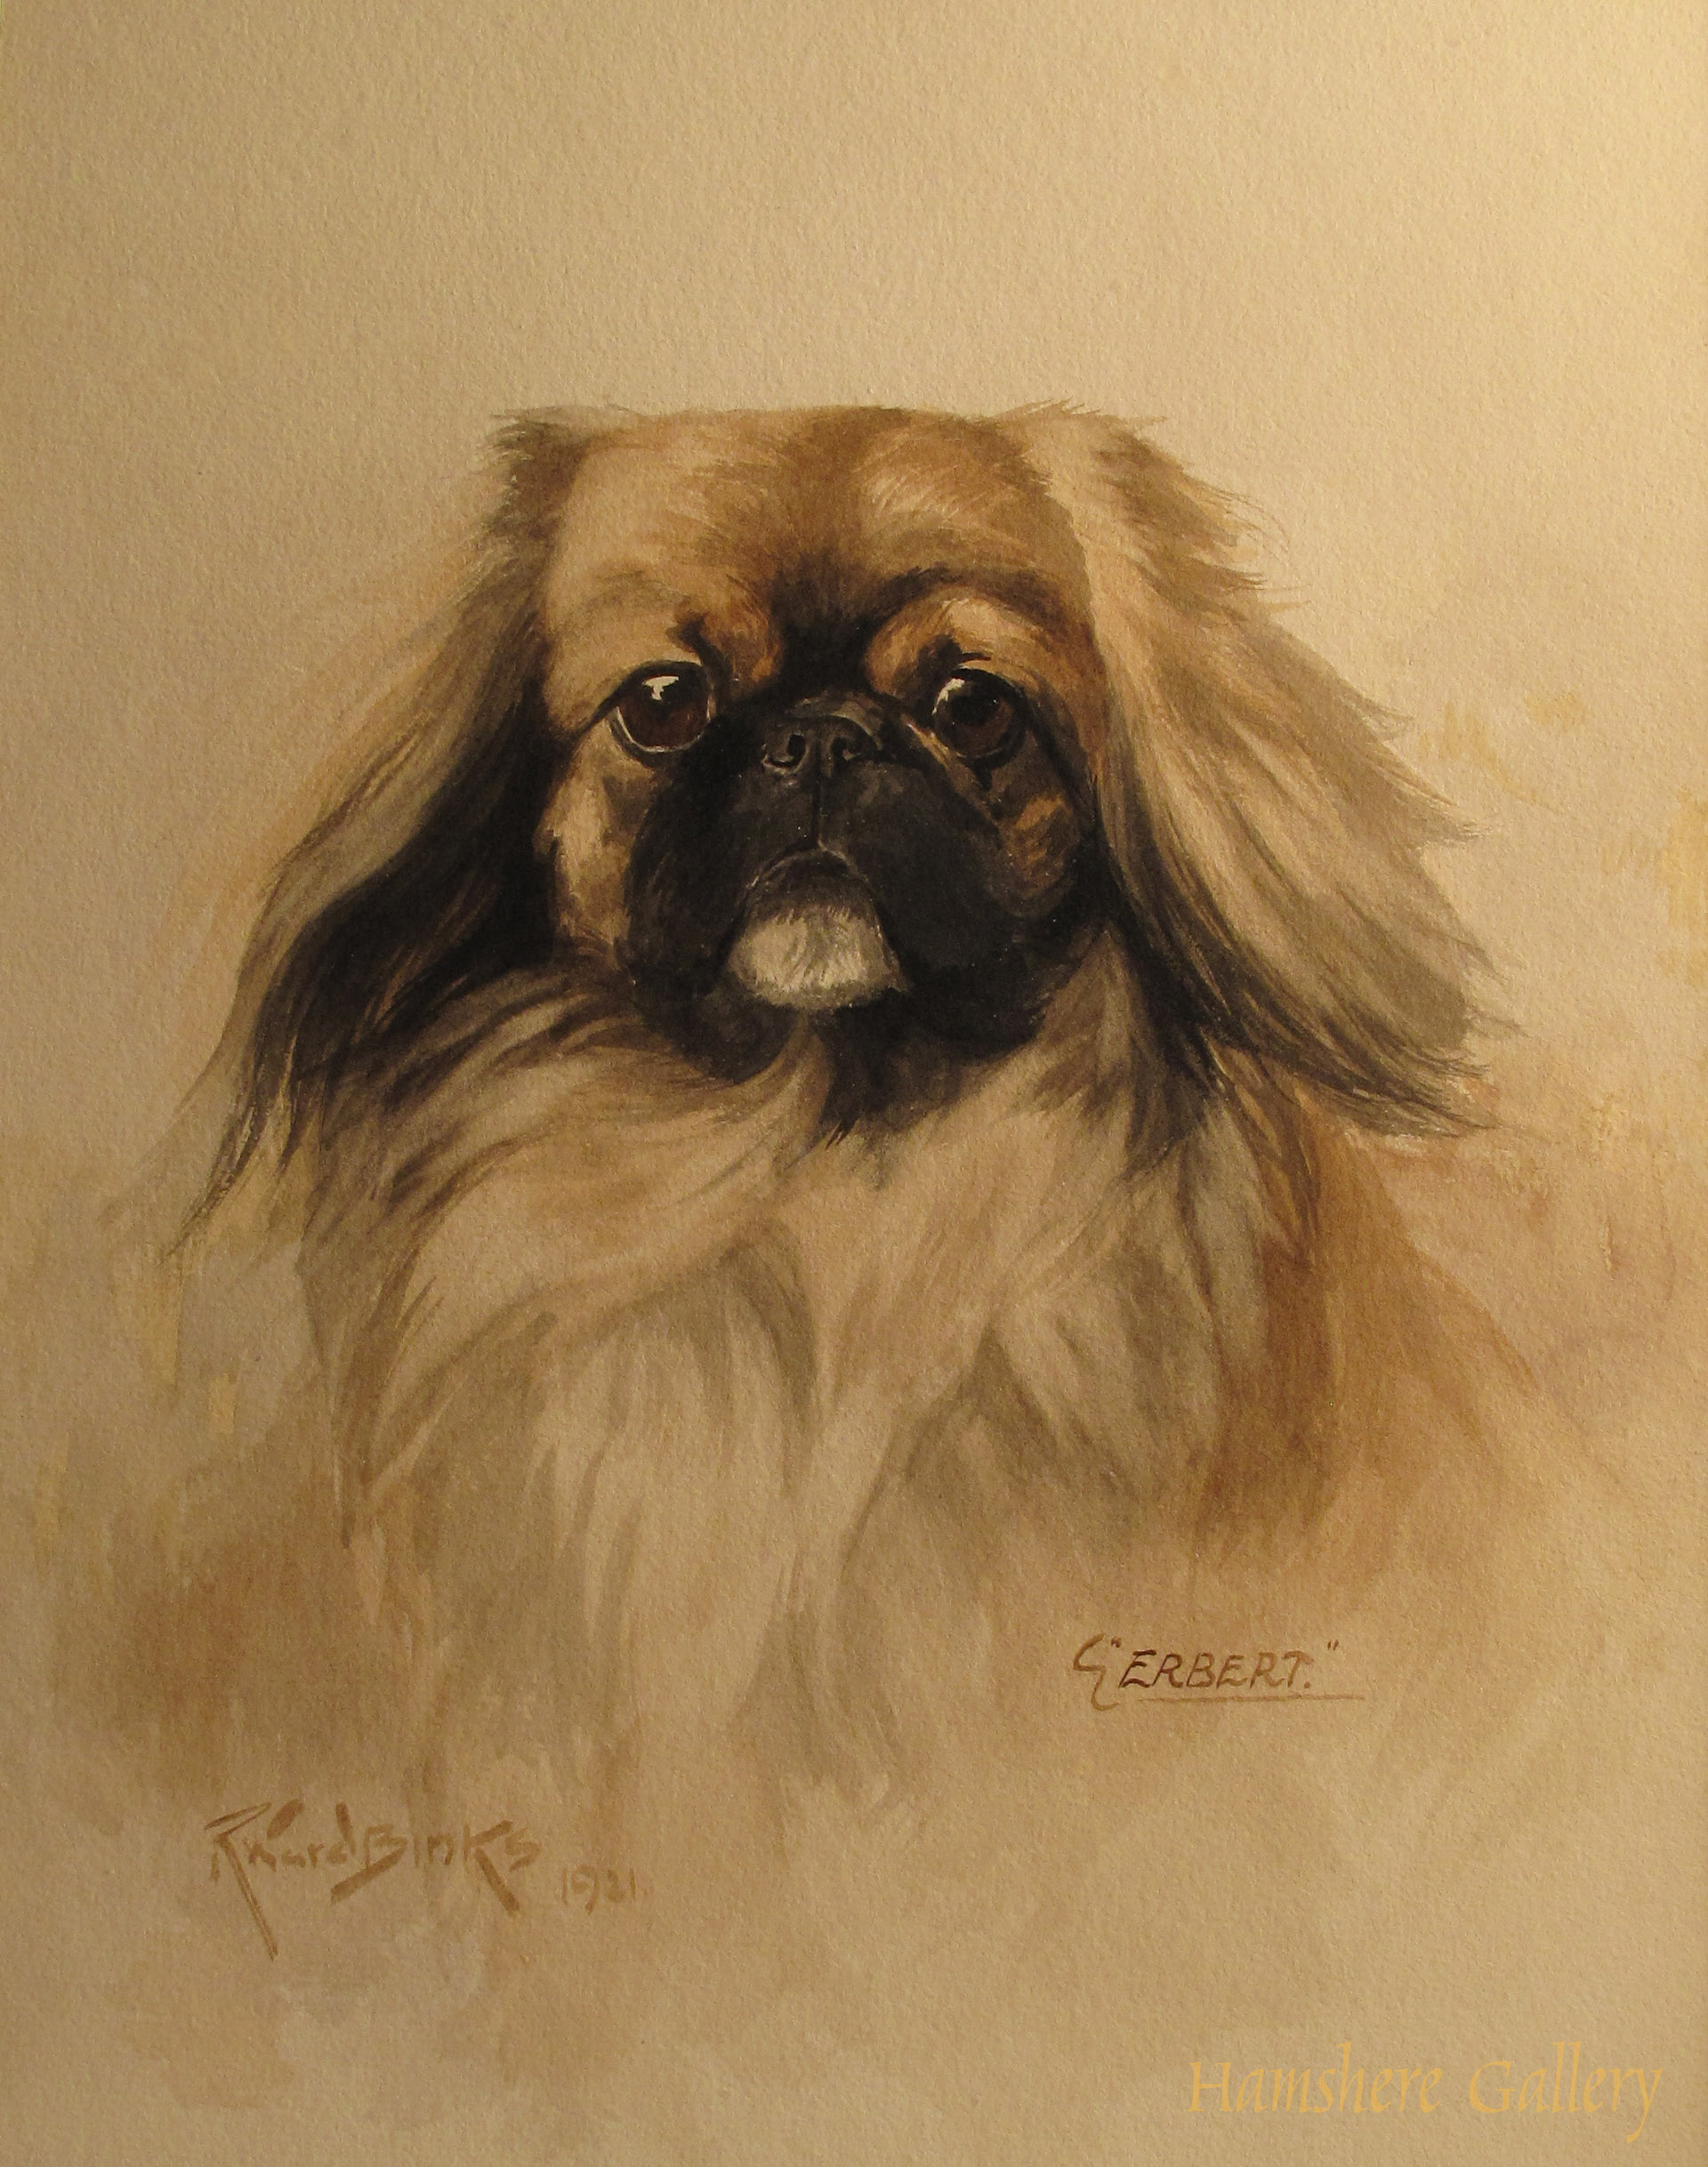 Click to see full size: The Pekingese �Erbert� by Reuben Ward Binks- The Pekingese �Erbert� by Reuben Ward Binks